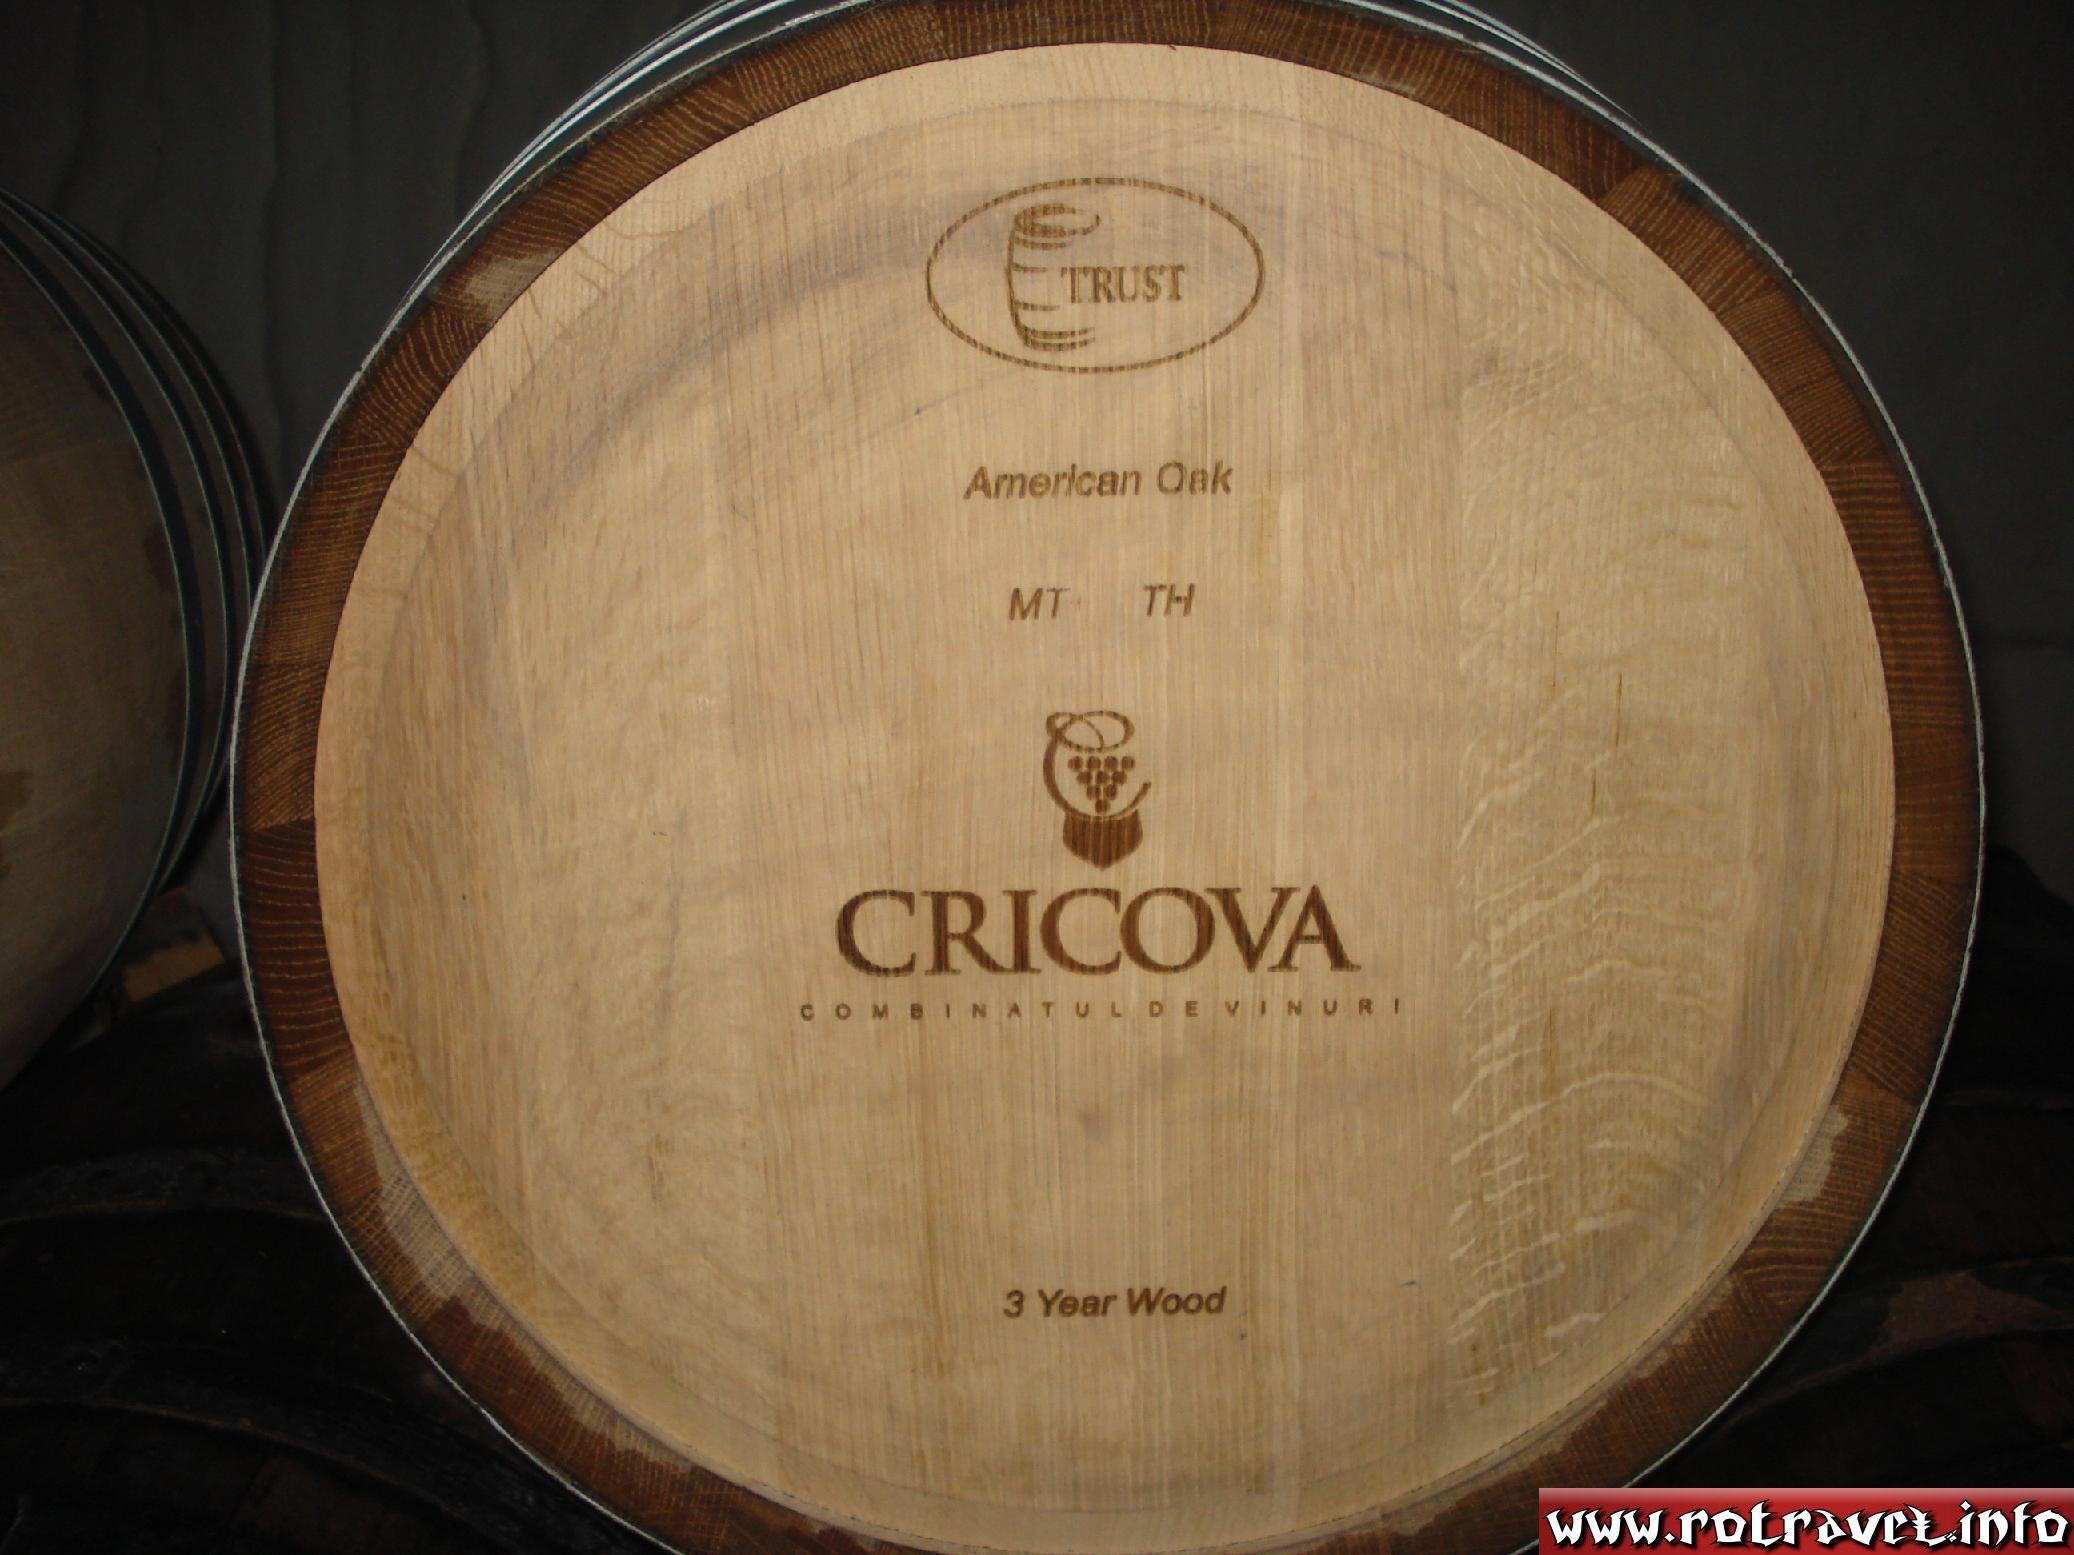 A common barrel in the subways of Cricova,made of American oak. The wine changes its taste if it's kept in this kind of cask.